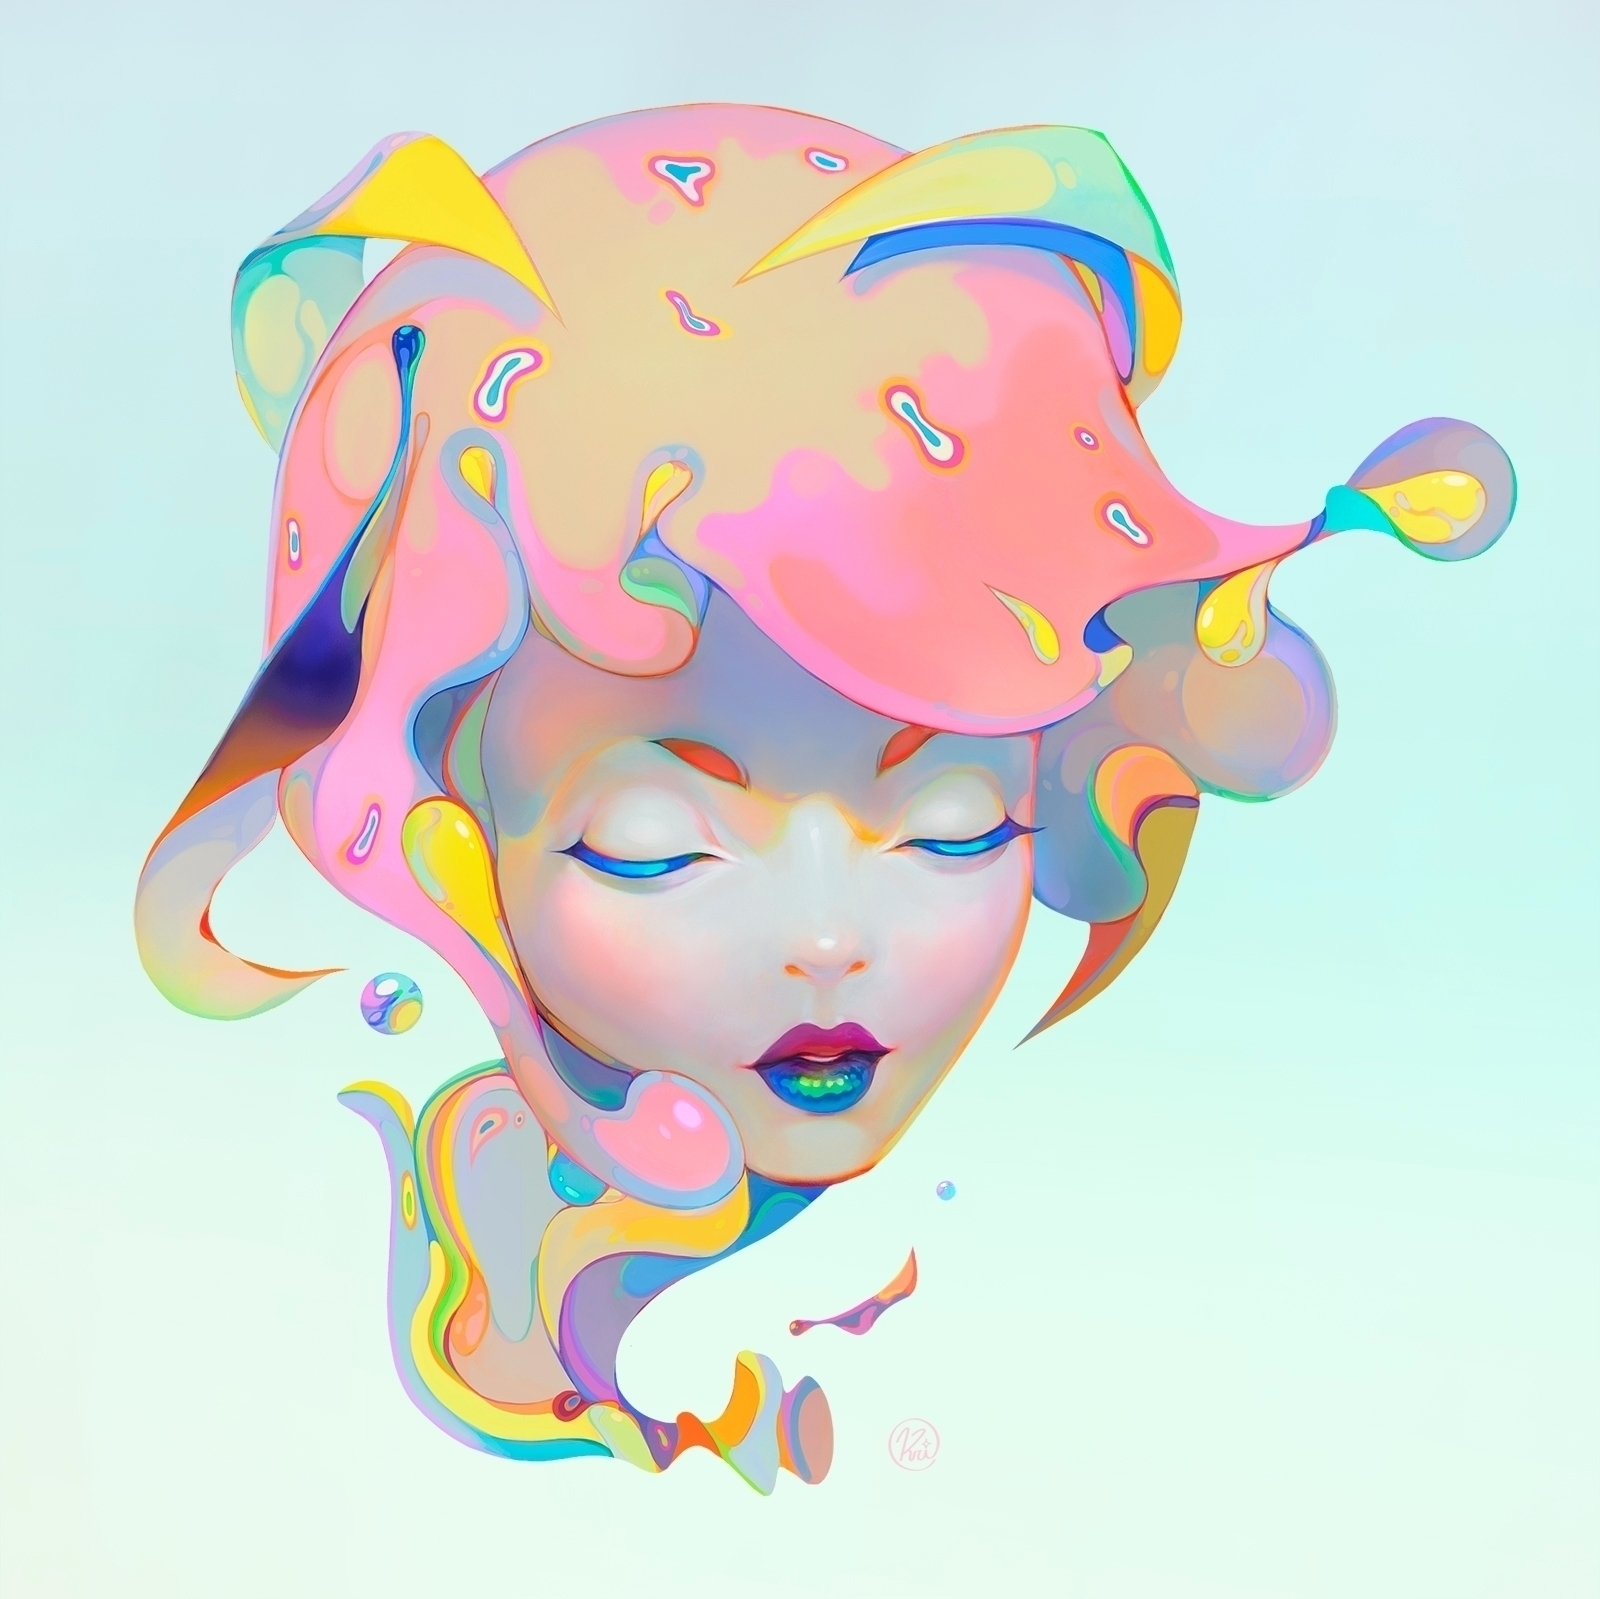 SLEEPING BUBBLE - krizpi | ello